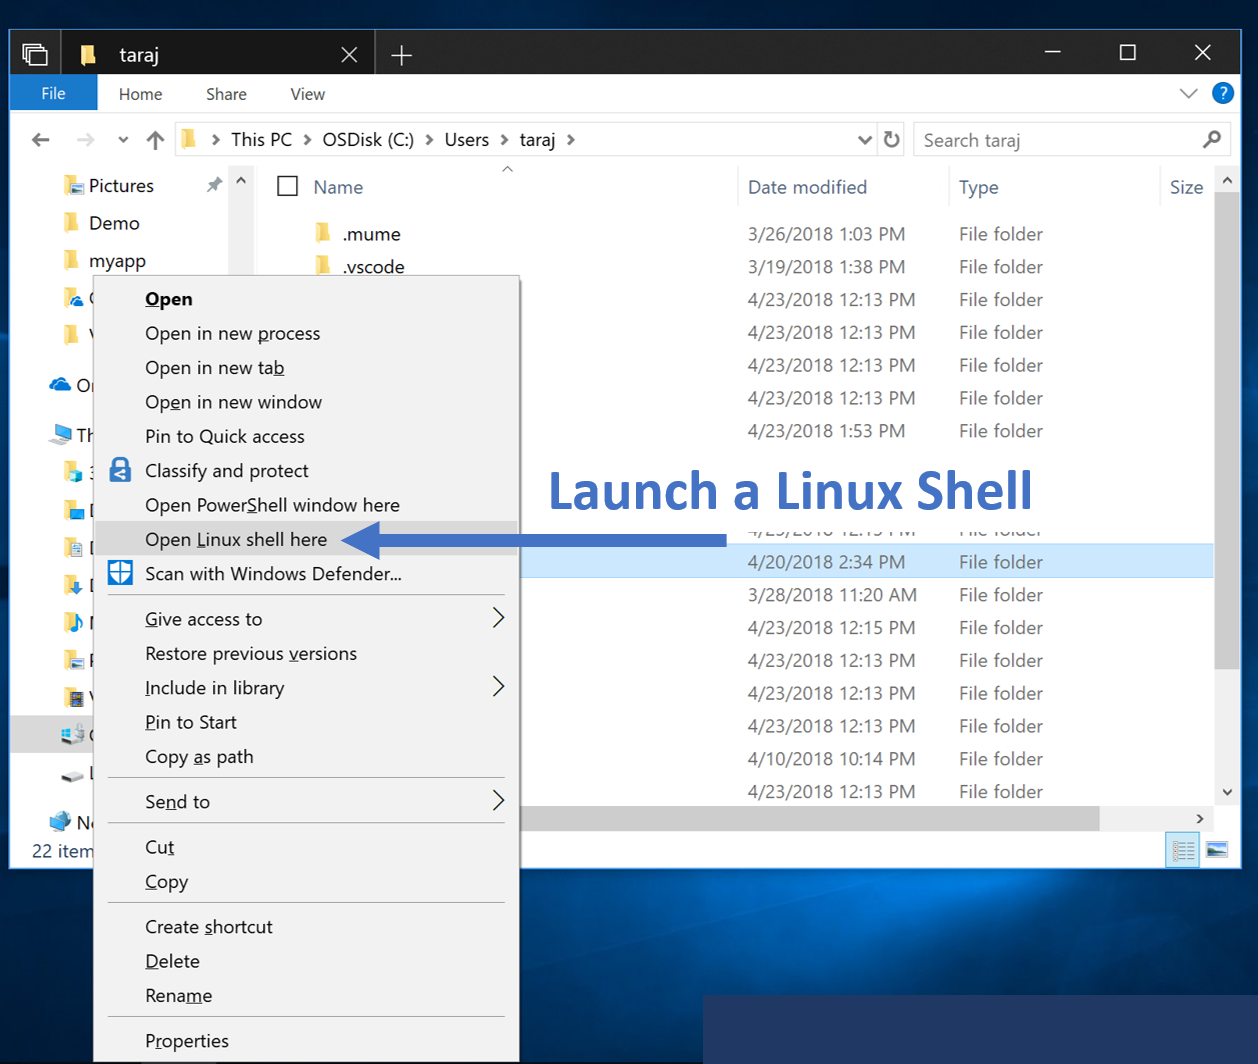 Windows Subsystem for Linux - The Windows 10 October 2018